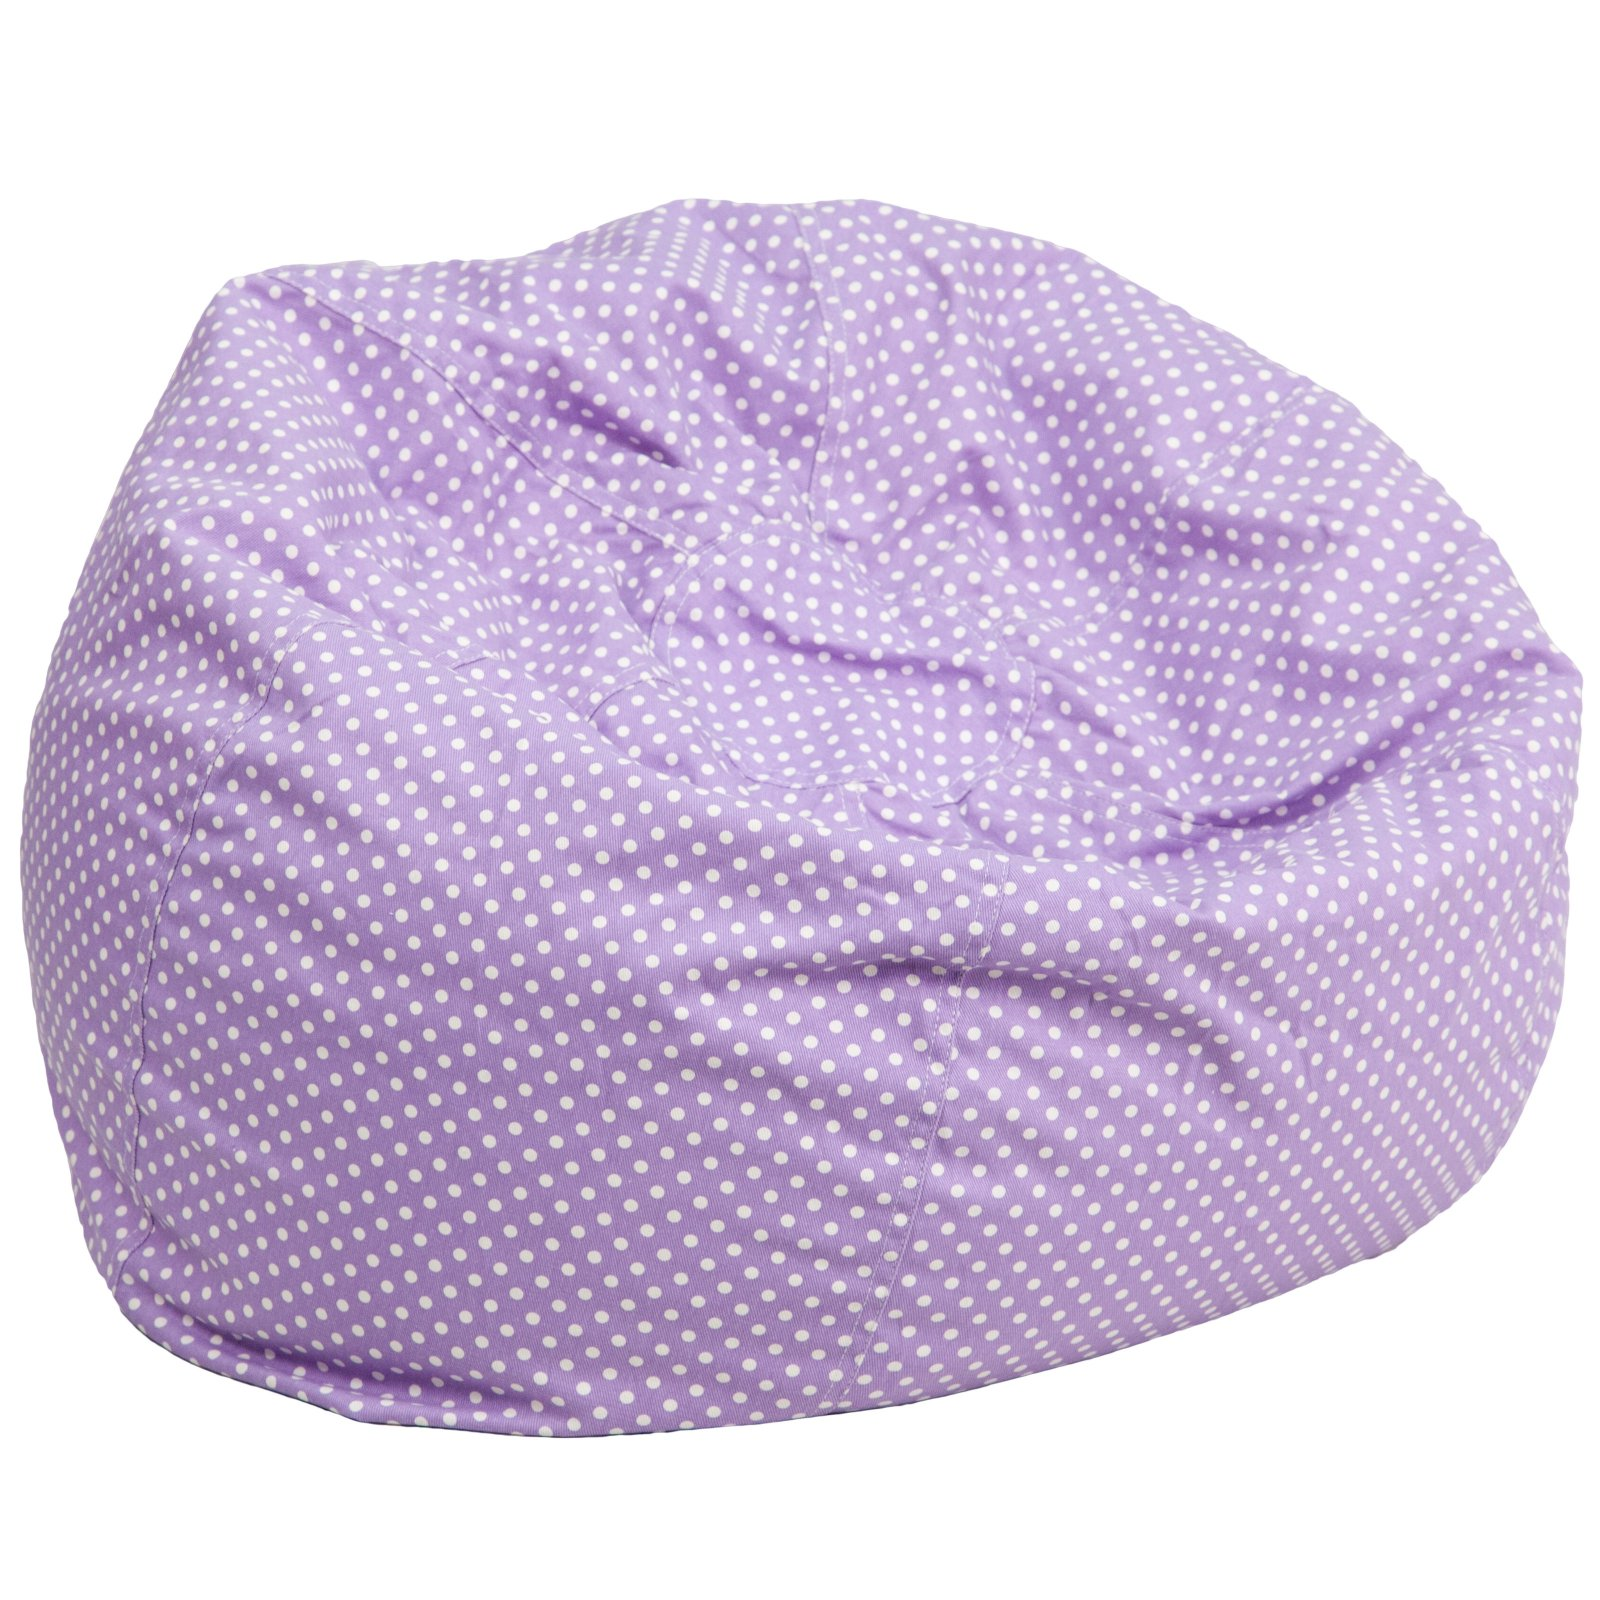 image 2 of 7 - Oversized Bean Bag Chairs